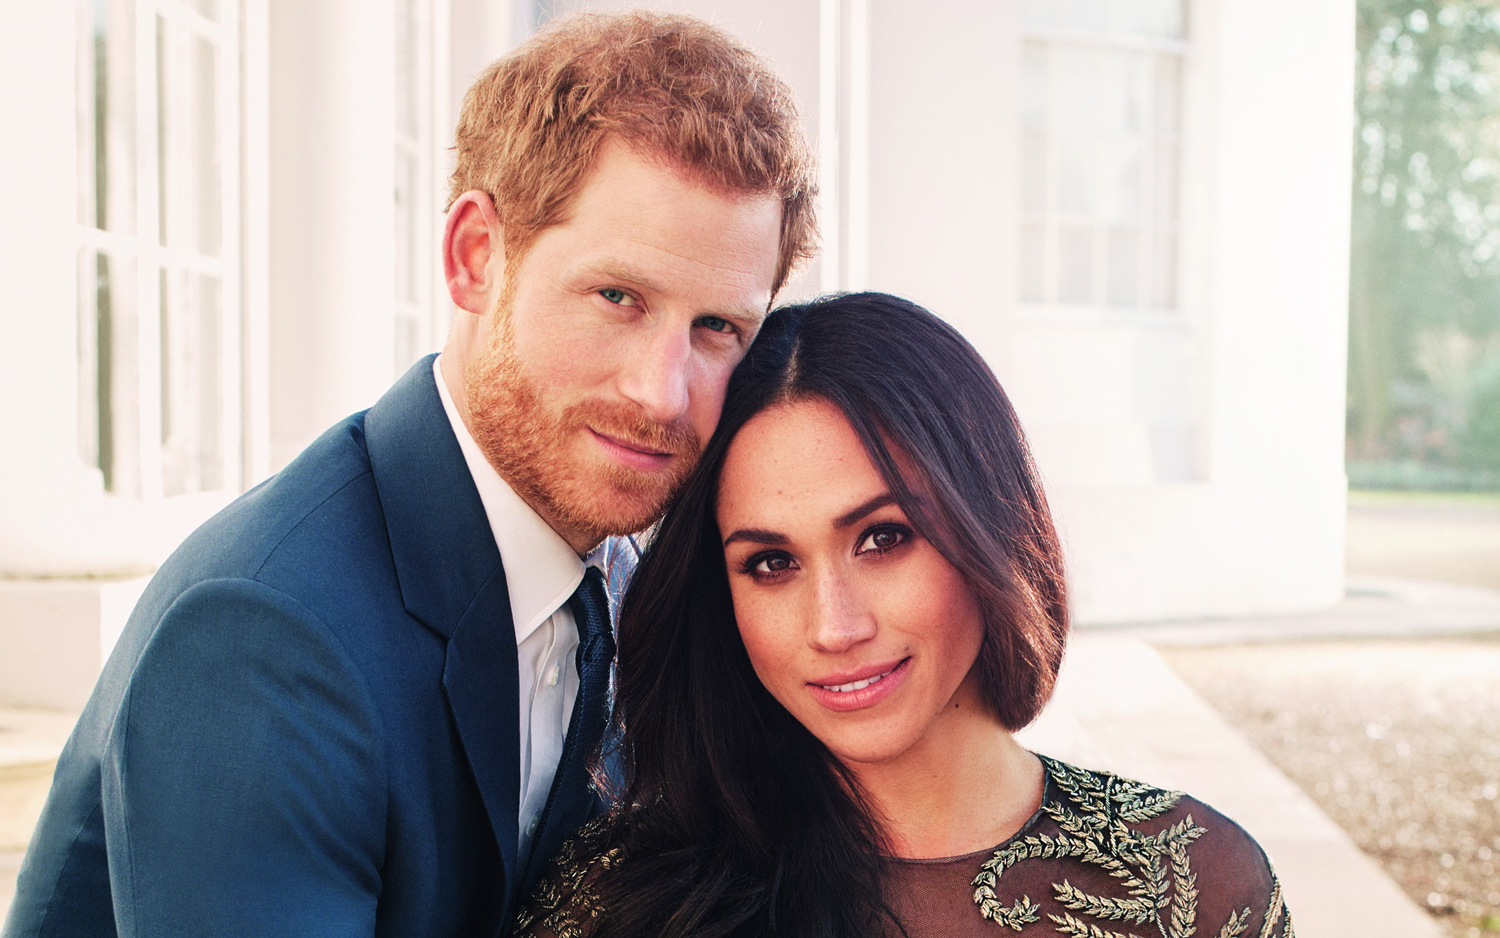 Where To Watch The Royal Wedding.Where And How To Watch The Royal Wedding 2018 On Tv Or